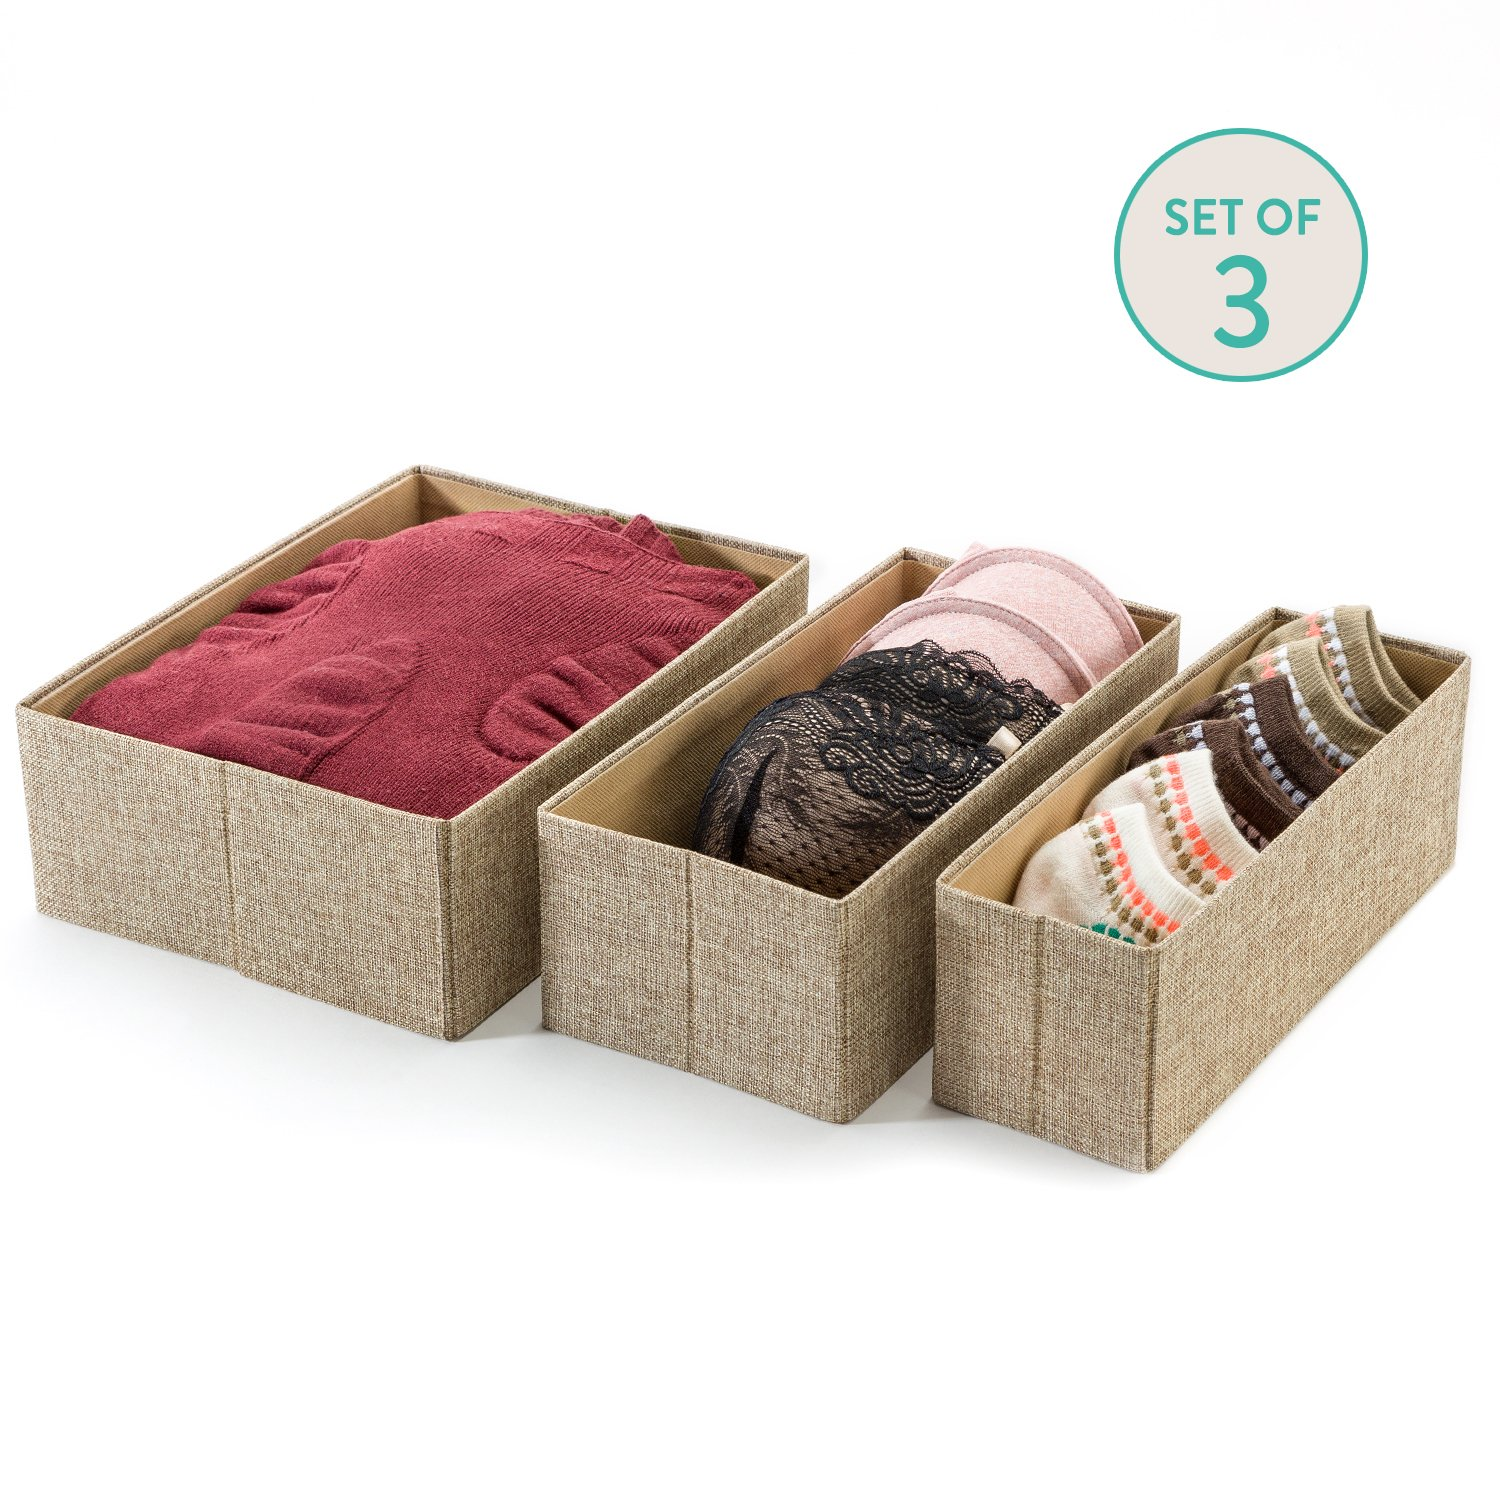 your with drawer shellie several organizers target home bedroom decor furniture design dresser shape color for organizer awesome and nice dressers